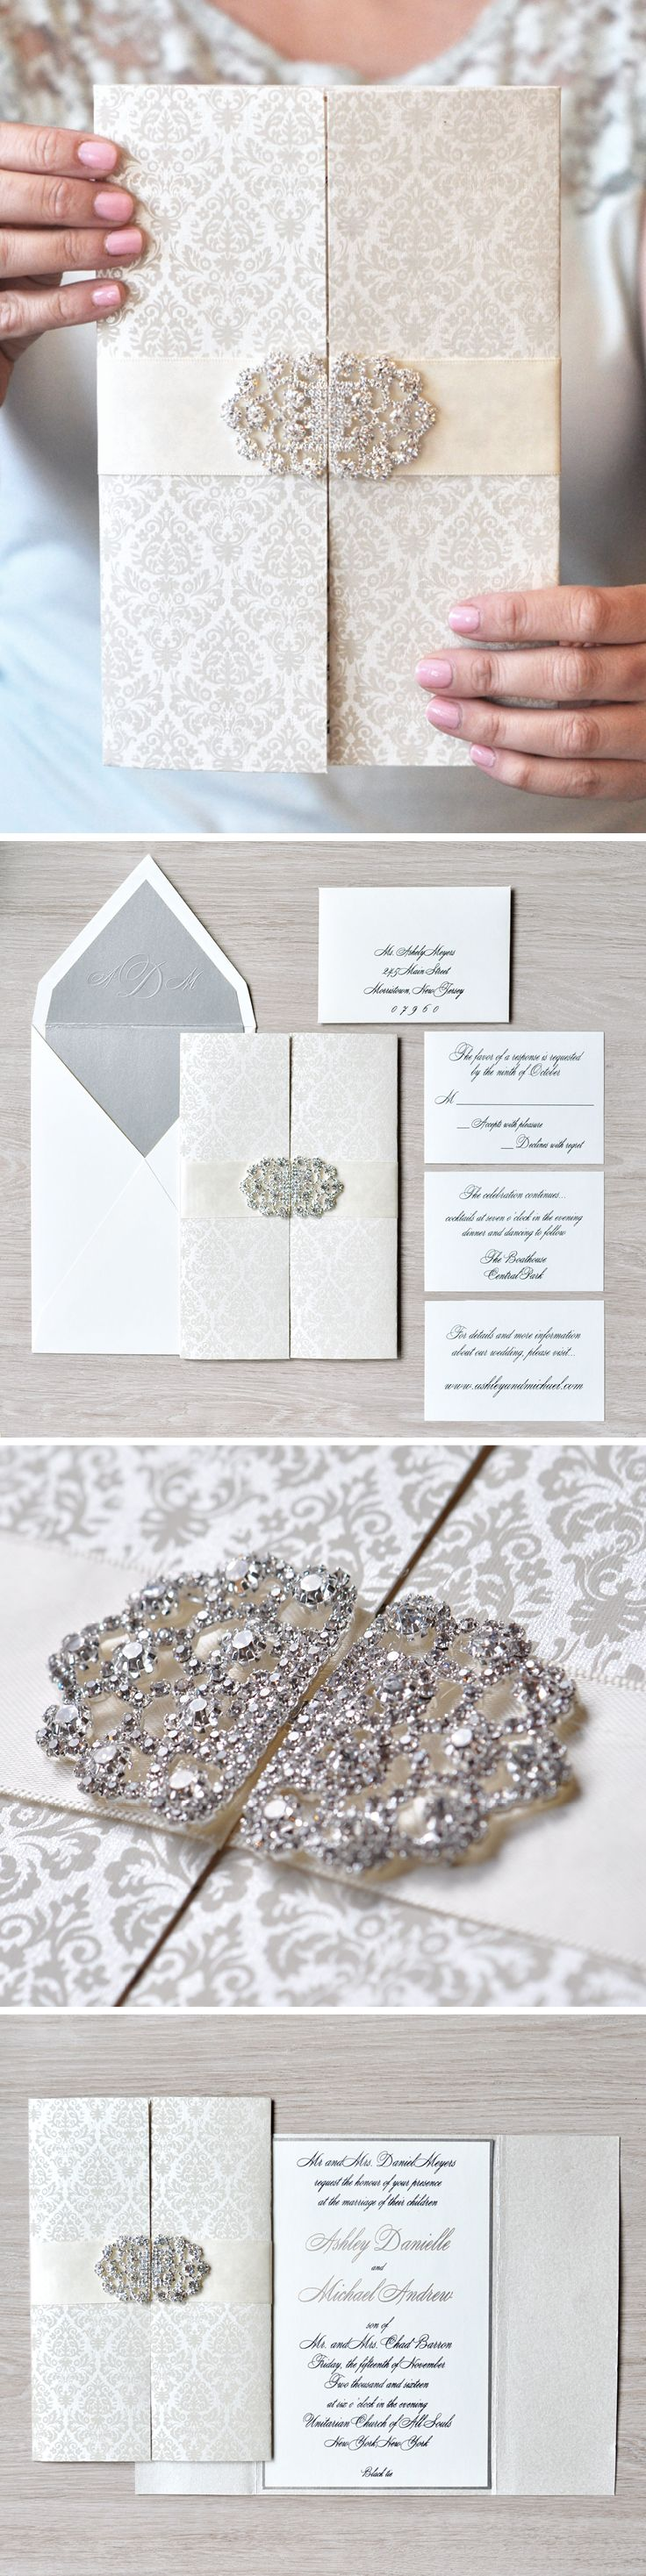 wedding invitation for friends india%0A Engaging Papers  Open up to this gatefold wedding invitation featuring a  darling damask pattern and stunning crystal brooch